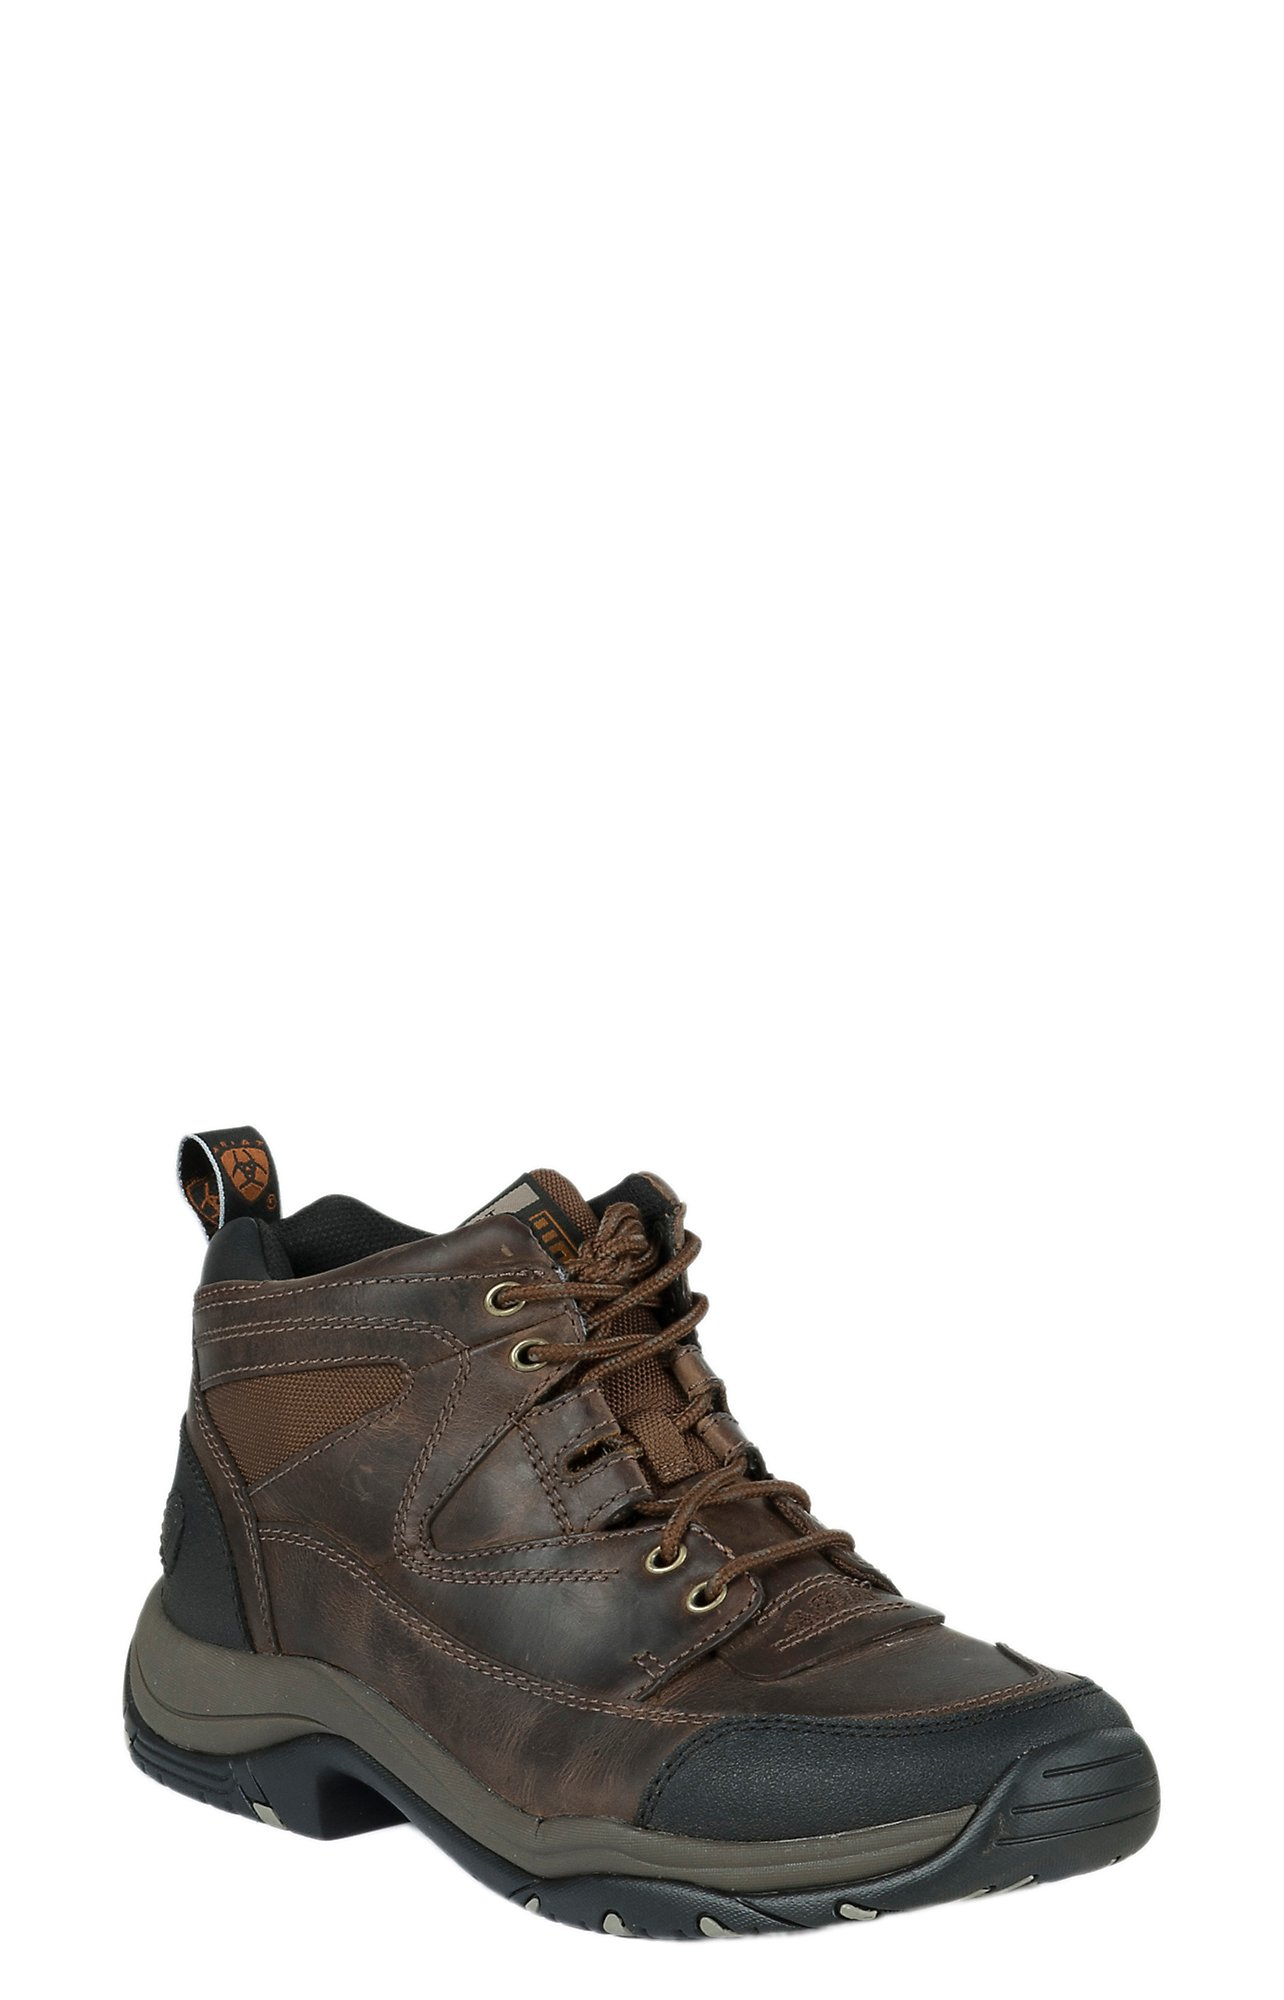 Ariat Men's Distressed Brown Terrain Hiker Boots | Cavender's